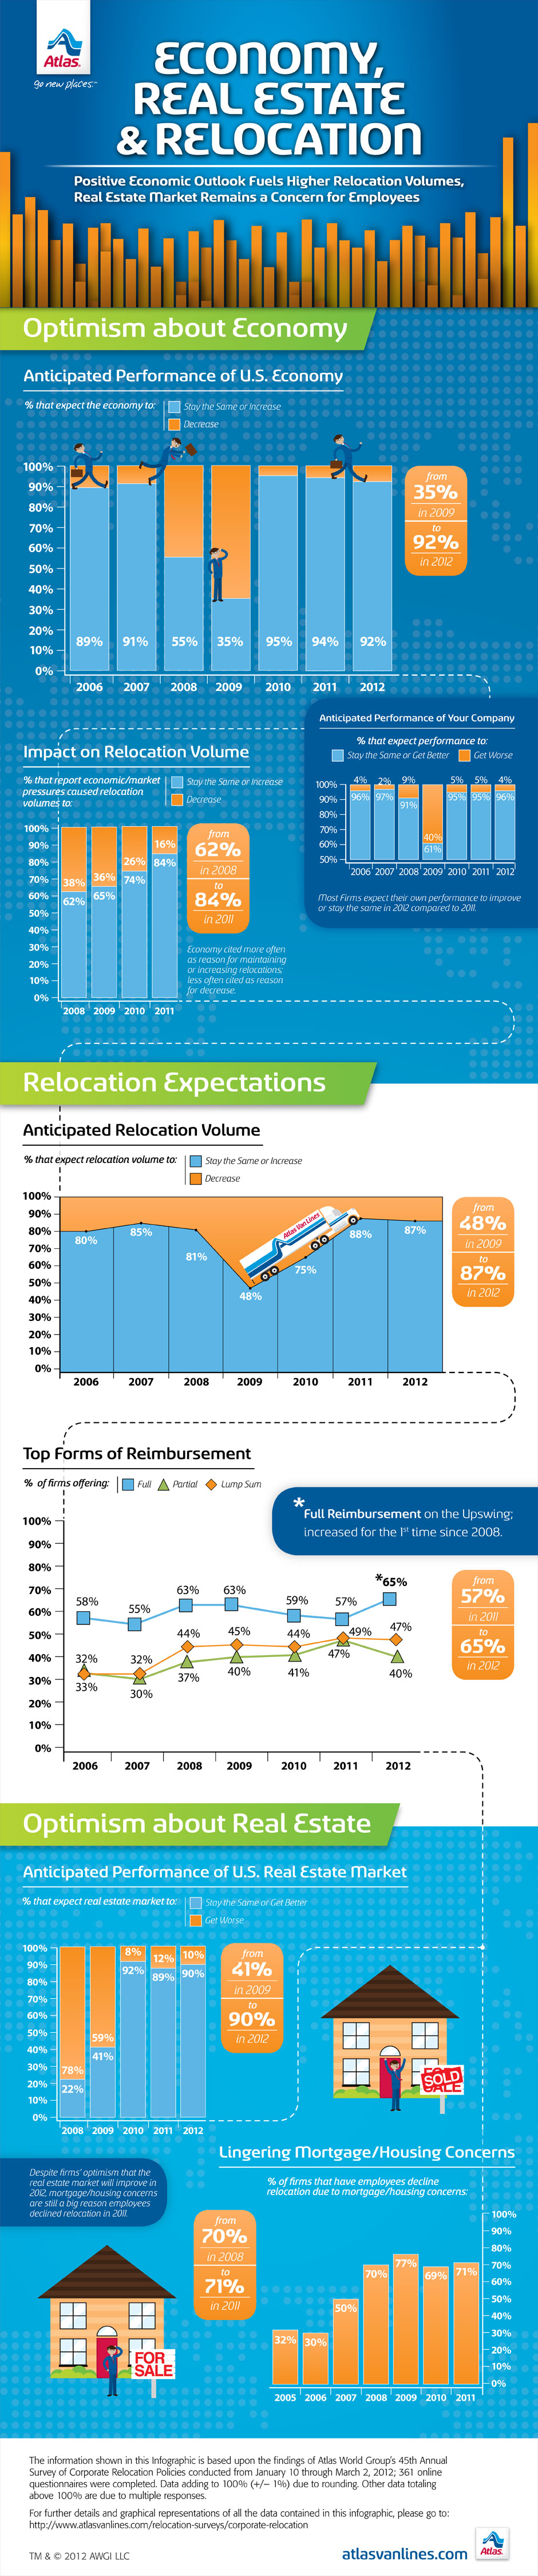 Economy, real estate and relocation